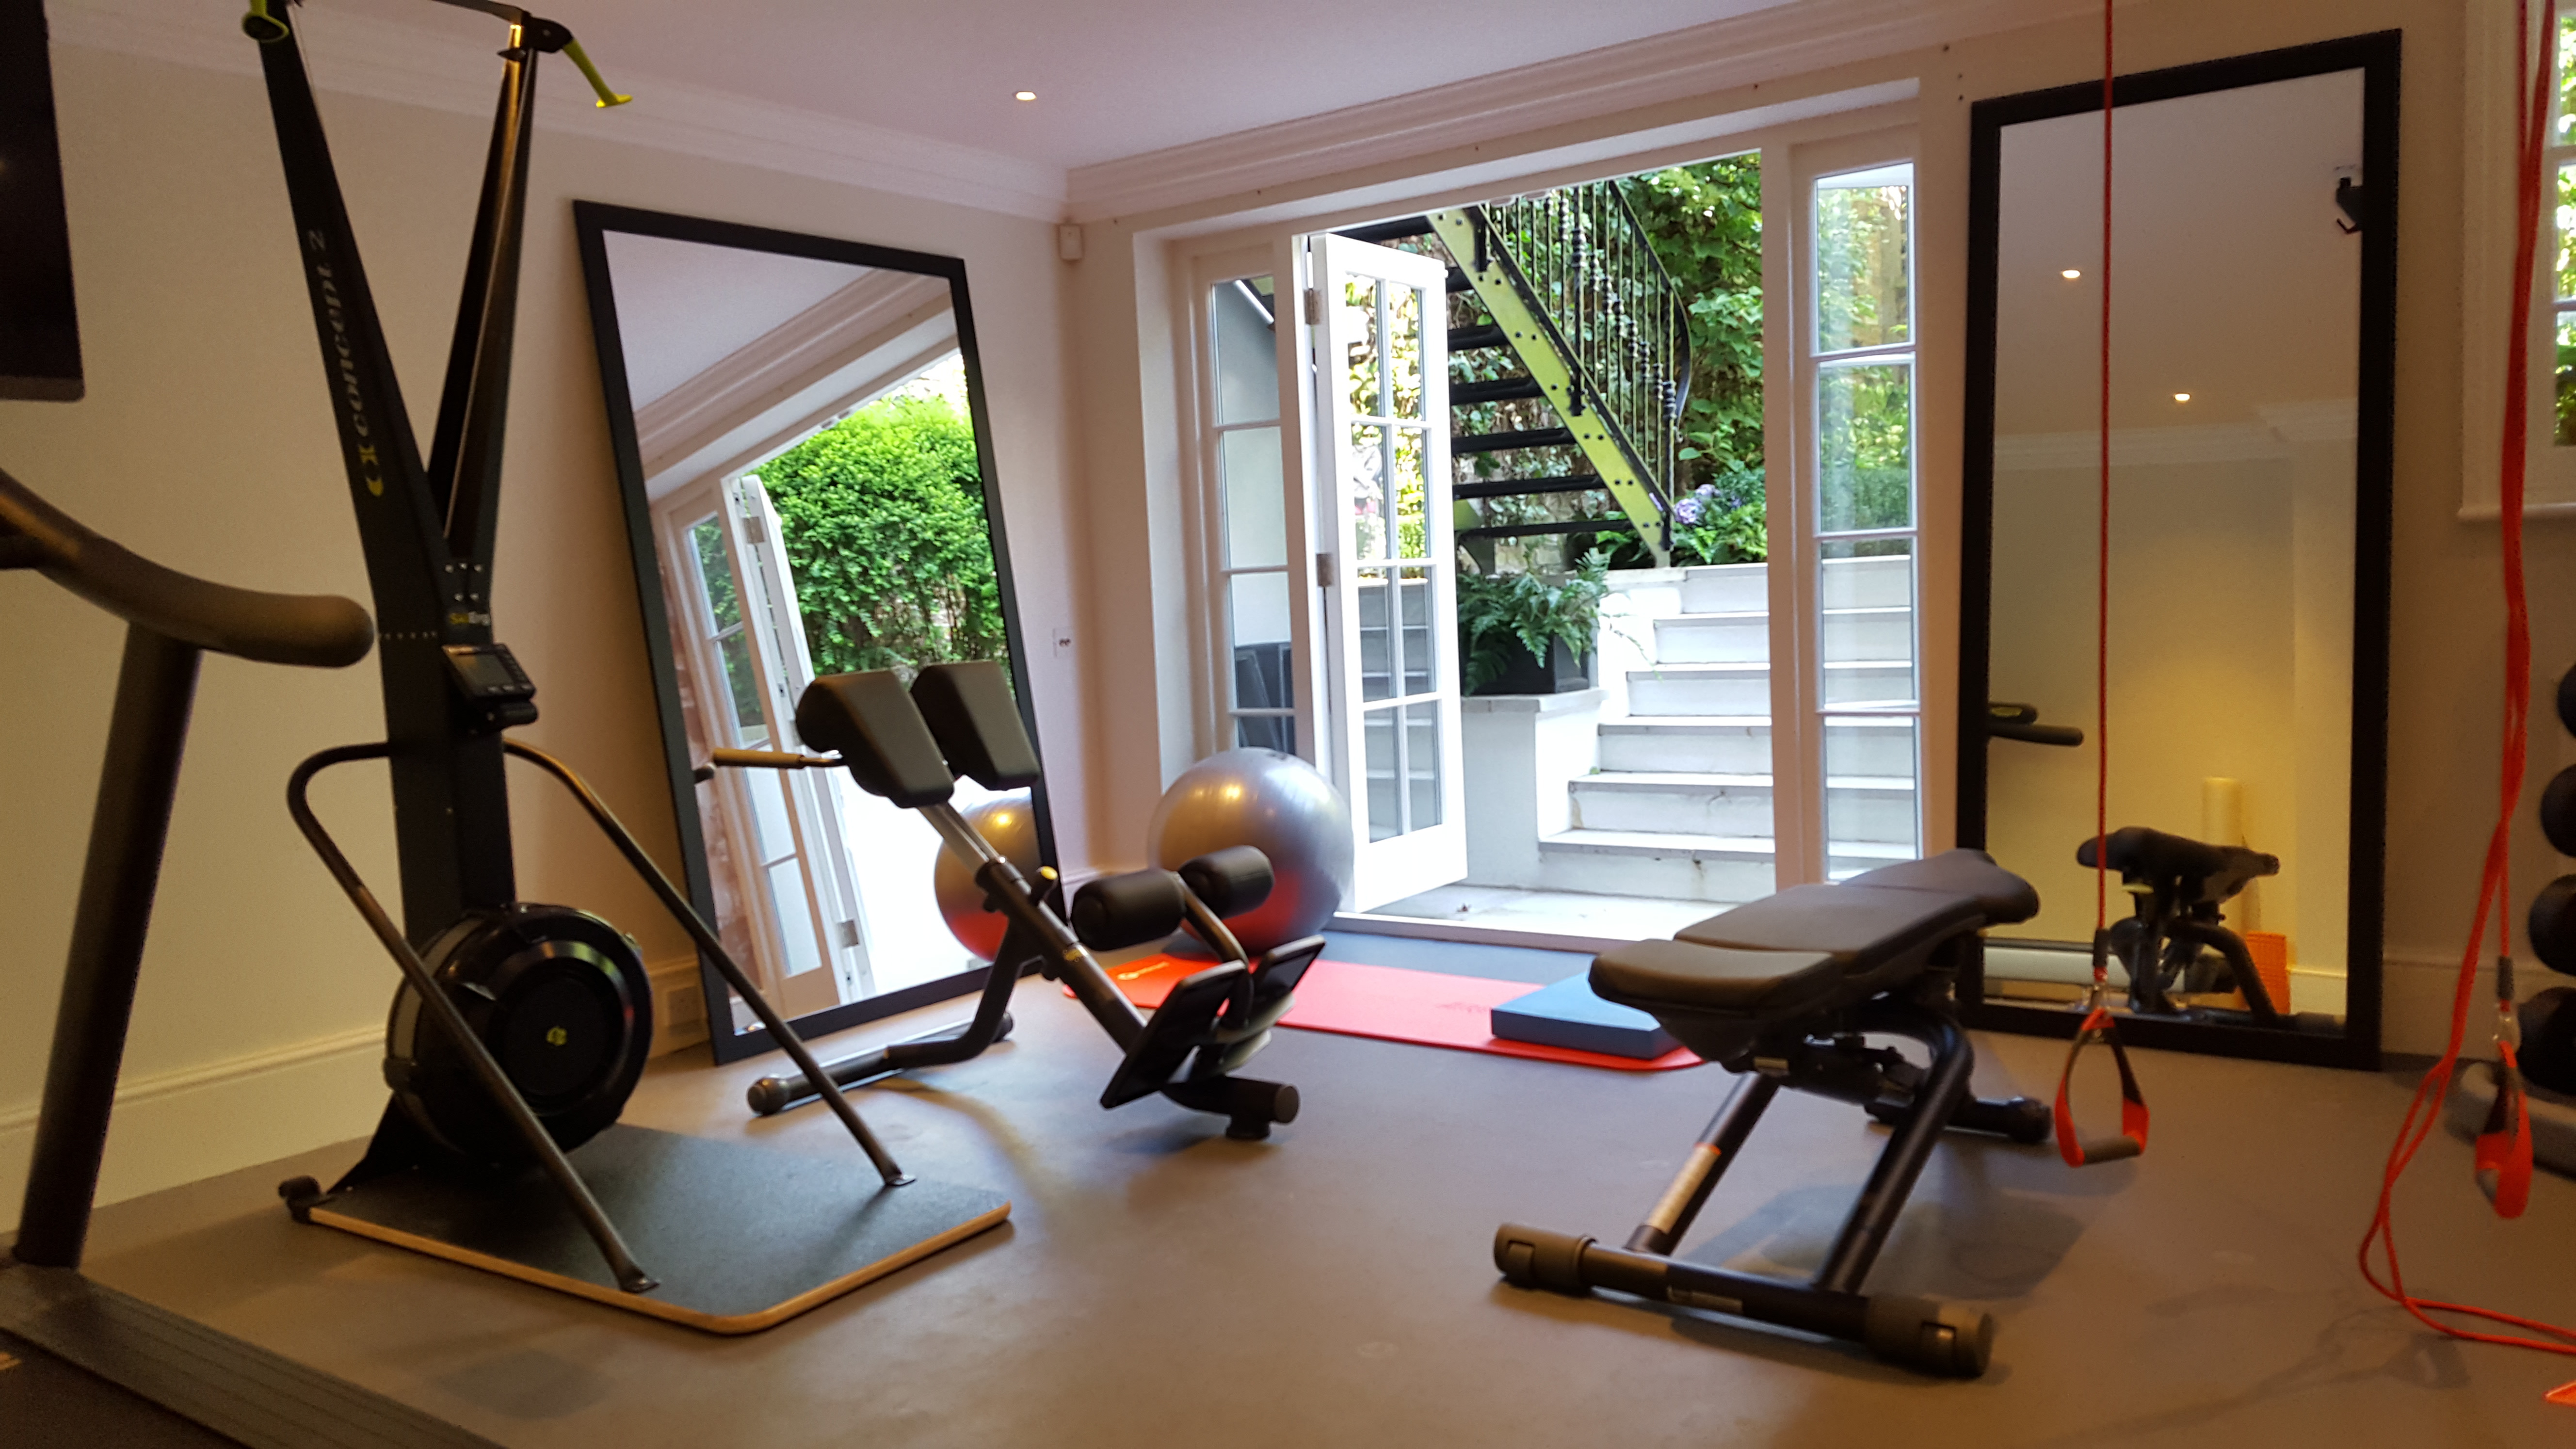 The Home Gym Room